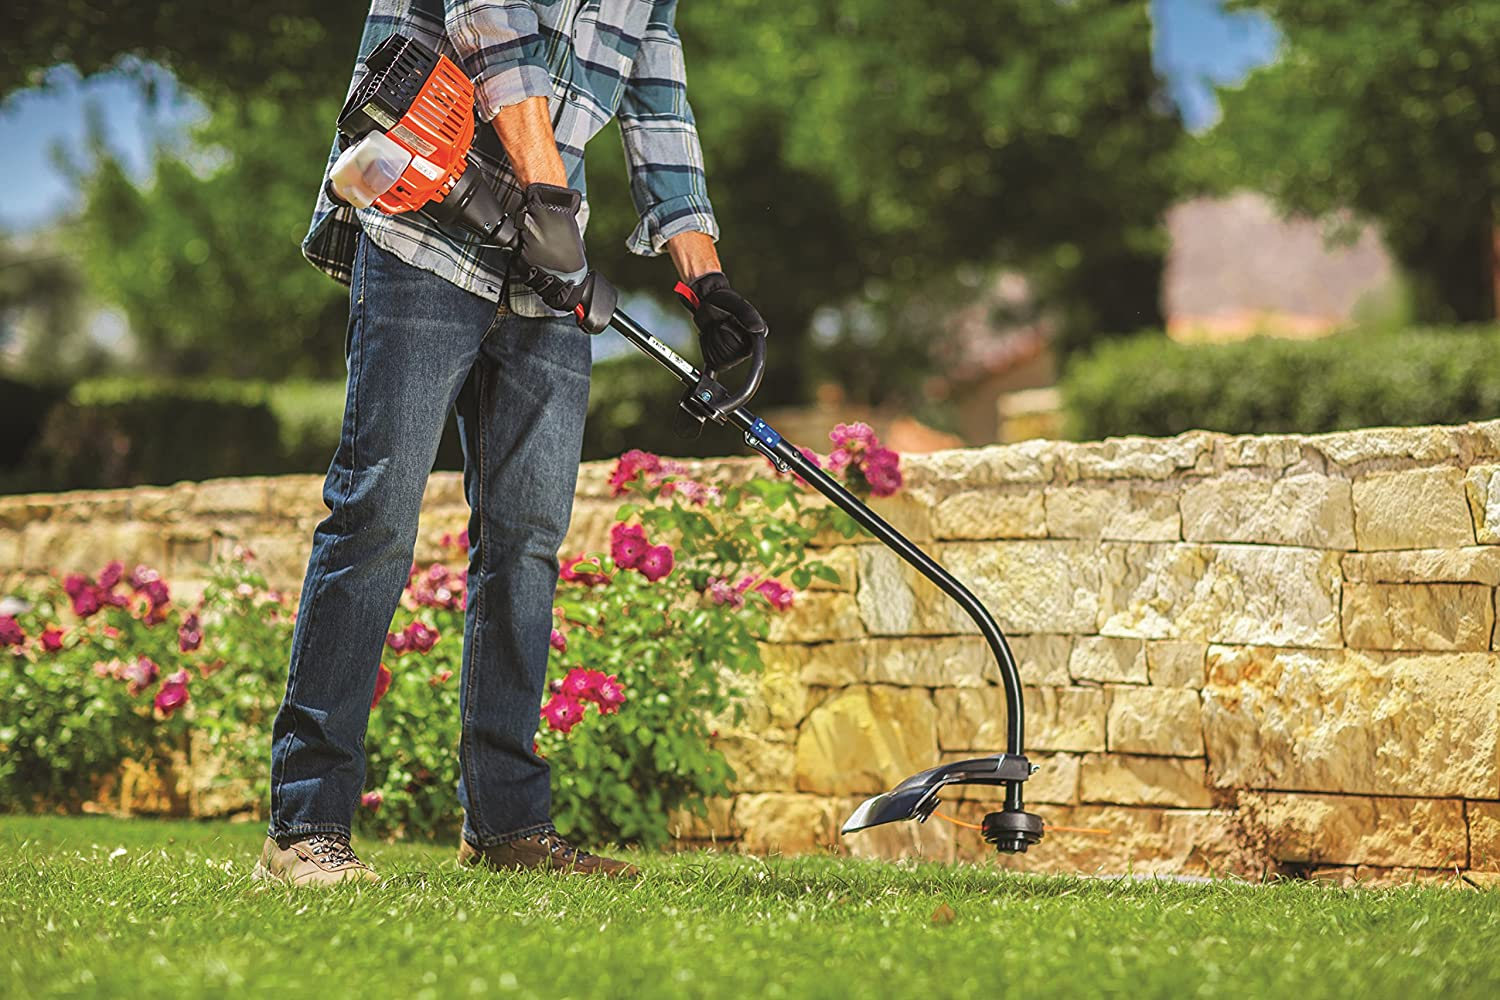 Remington Rm2510 Rustler 25cc 2 Cycle 16 Inch Curved Weed Eater Diagram And Parts List For Weedeater Grasslinetrimmer Shaft Gas Trimmer Garden Outdoor